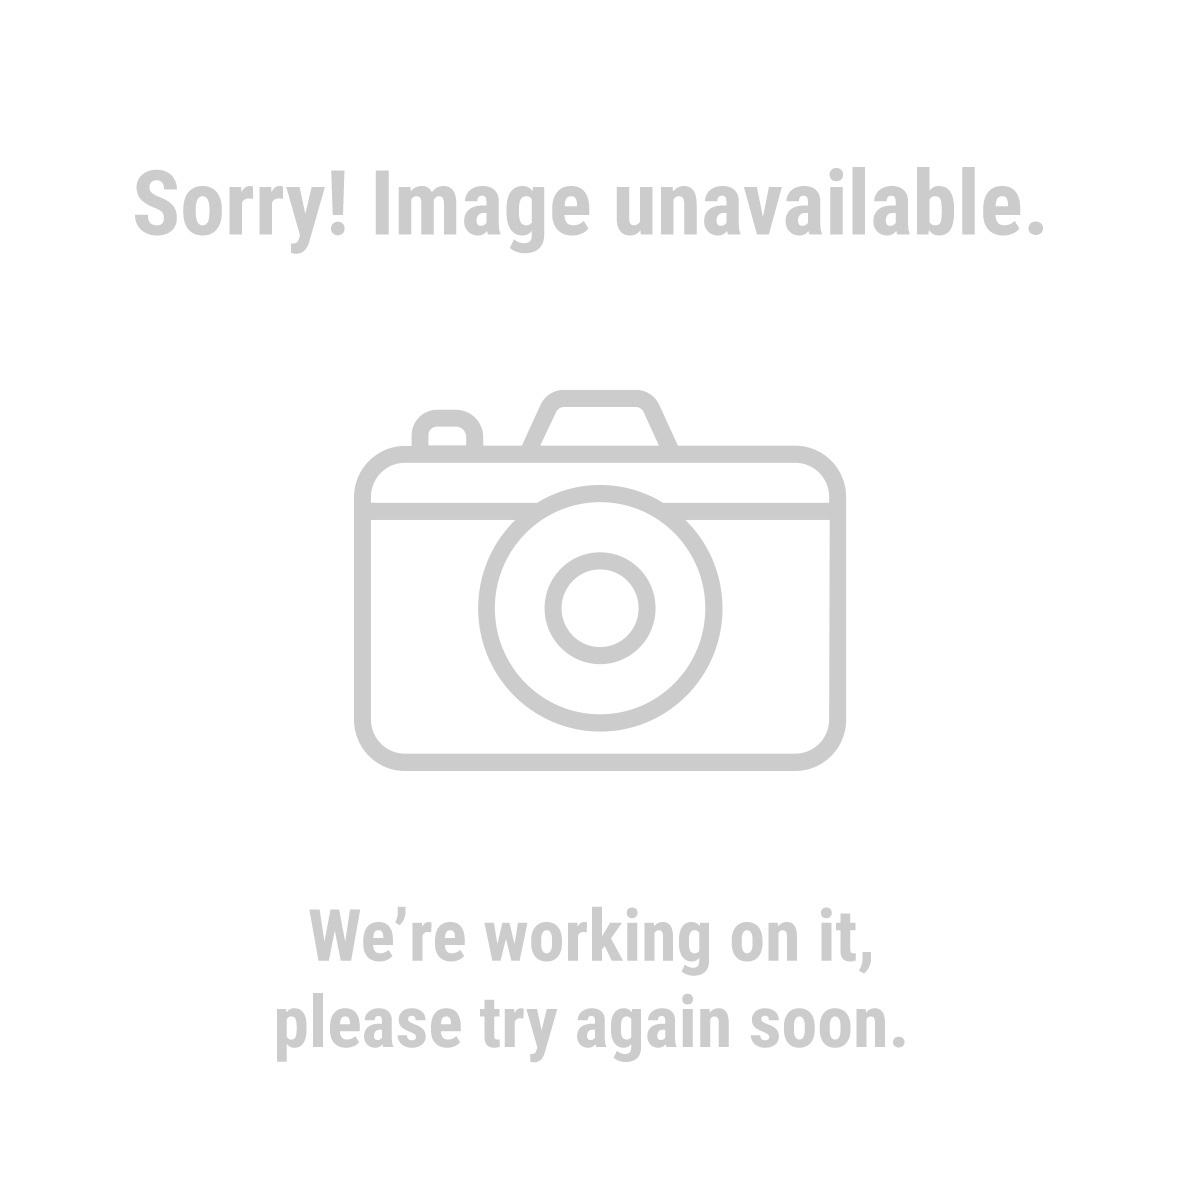 Western Safety 66538 Safety Goggles, 3 Pack